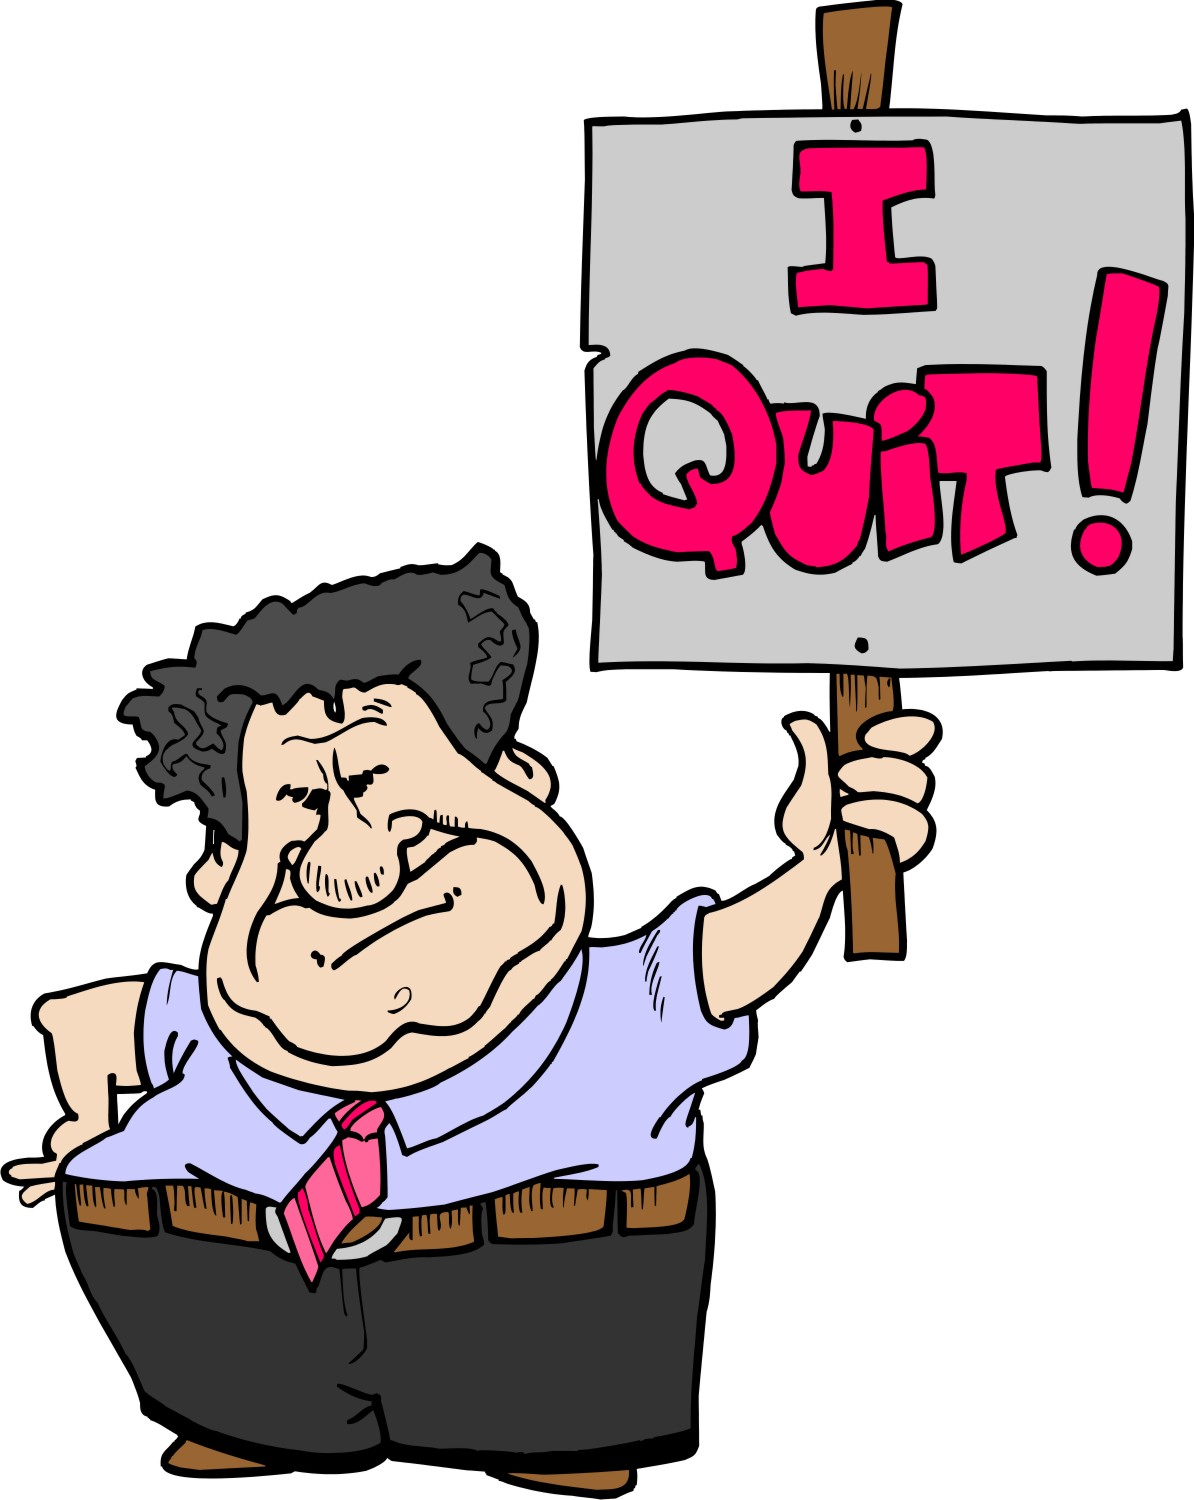 quit clipart - photo #37